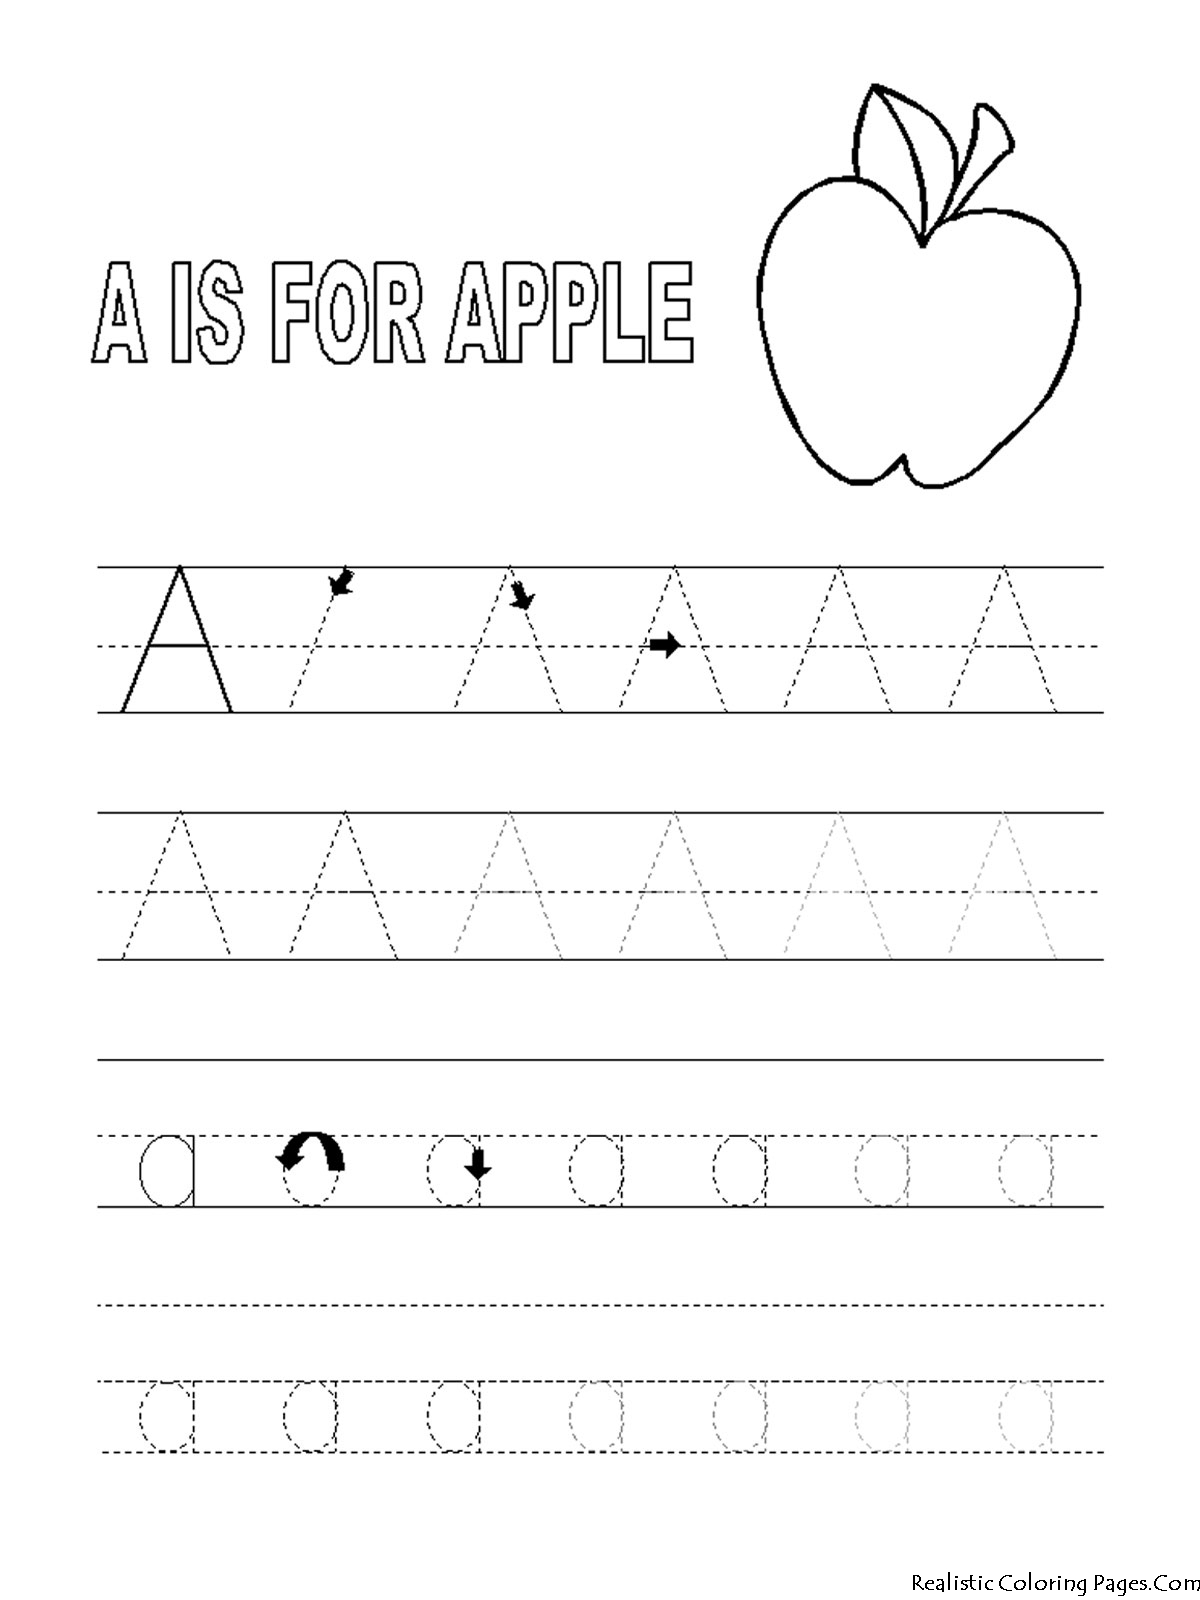 A To Z Coloring Pages Pdf : A letters alphabet coloring pages realistic